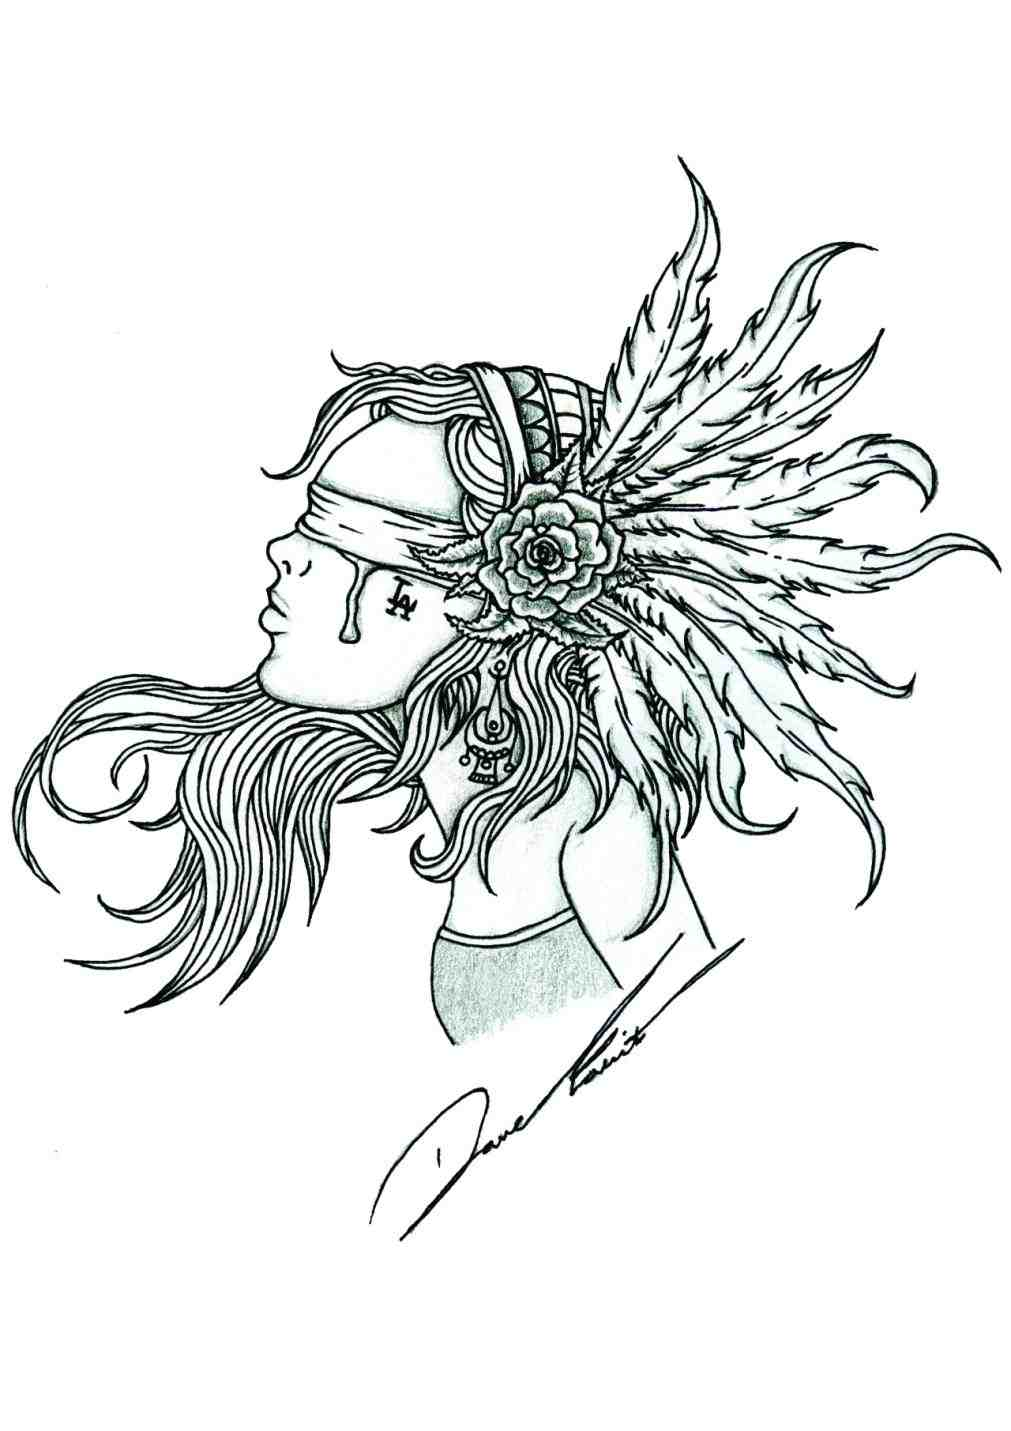 1011x1431 Tumblr Drawings Hipster Black And White Easy